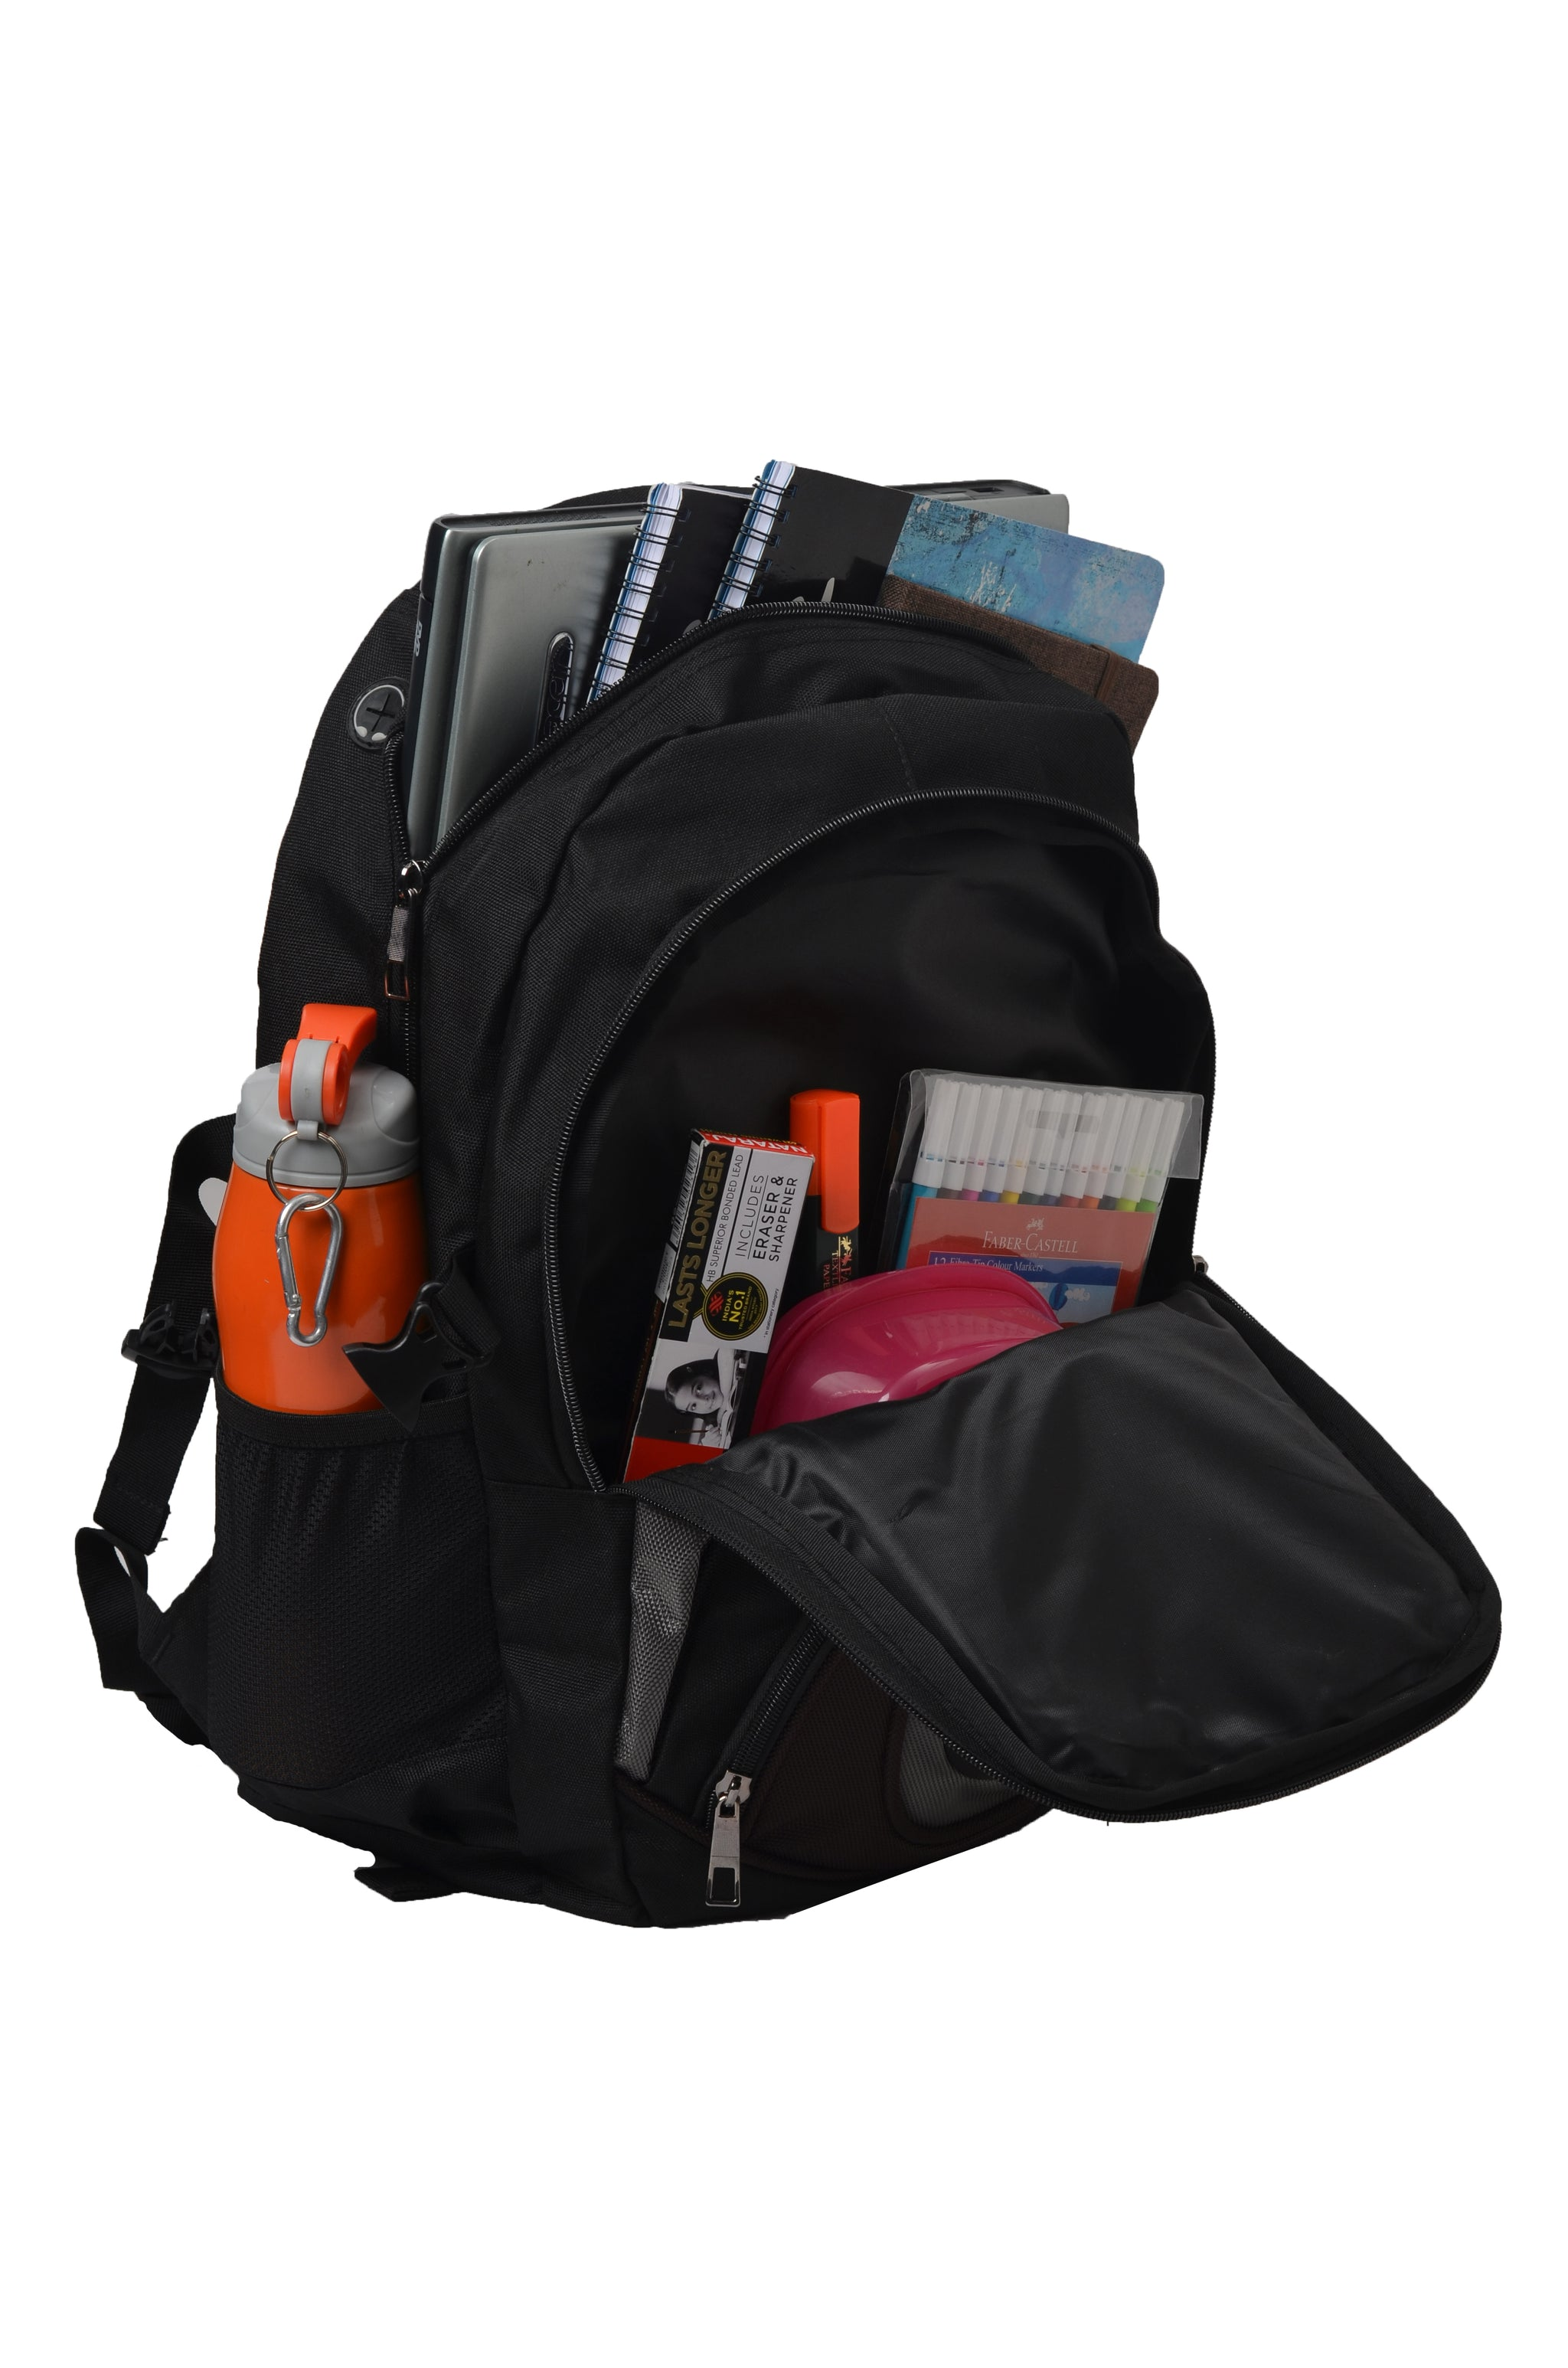 F Gear Axe 27 Ltr Black Casual Laptop Bag